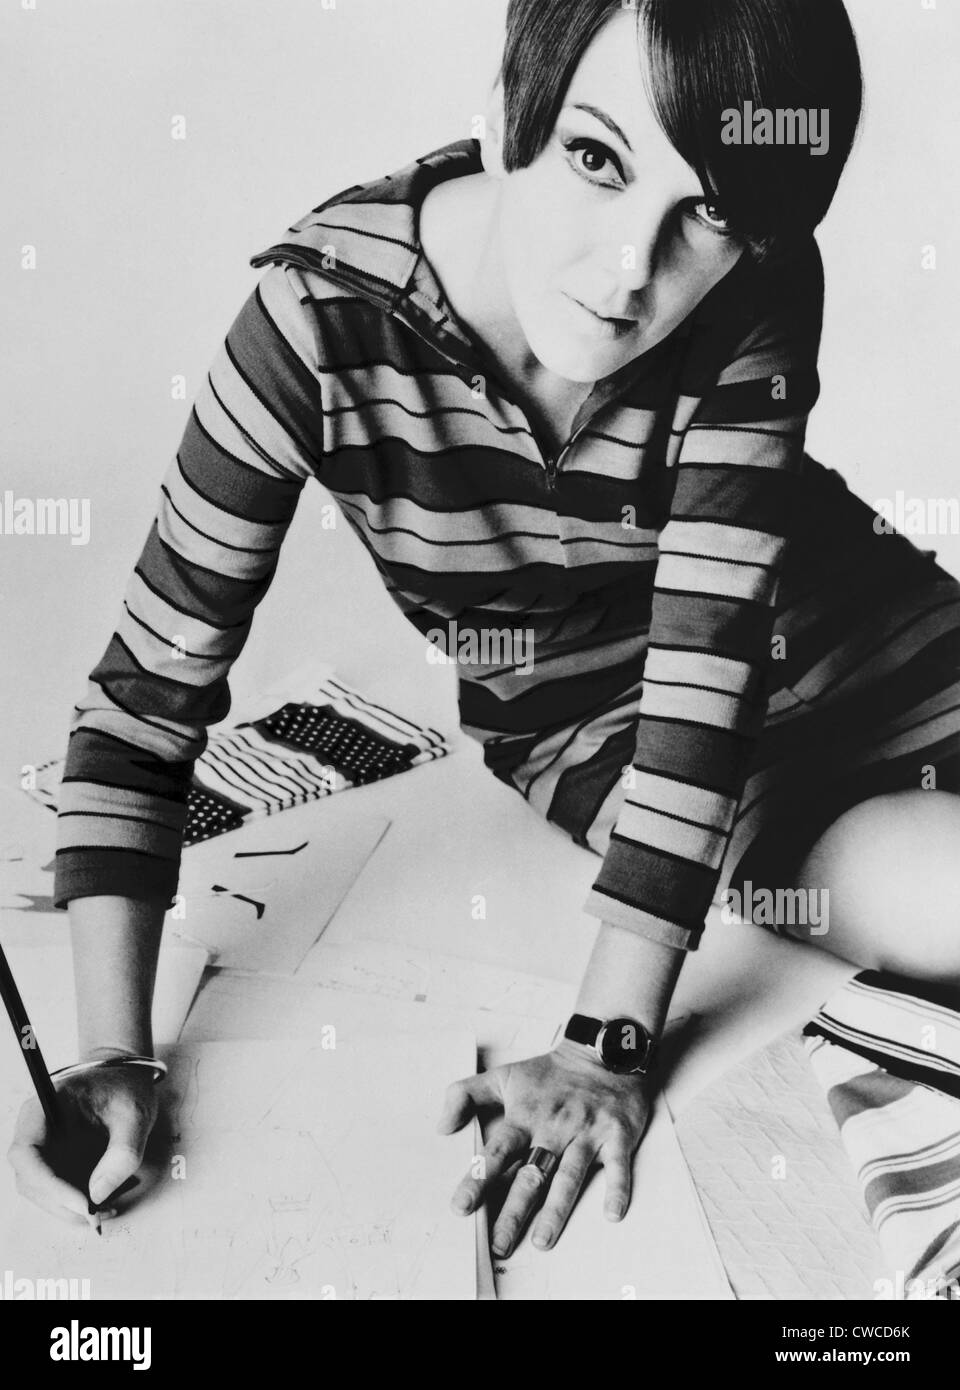 Mary Quant, British mod fashion designer. Her youthful clothing featured mini-skirts, tights, and bright colors - Stock Image